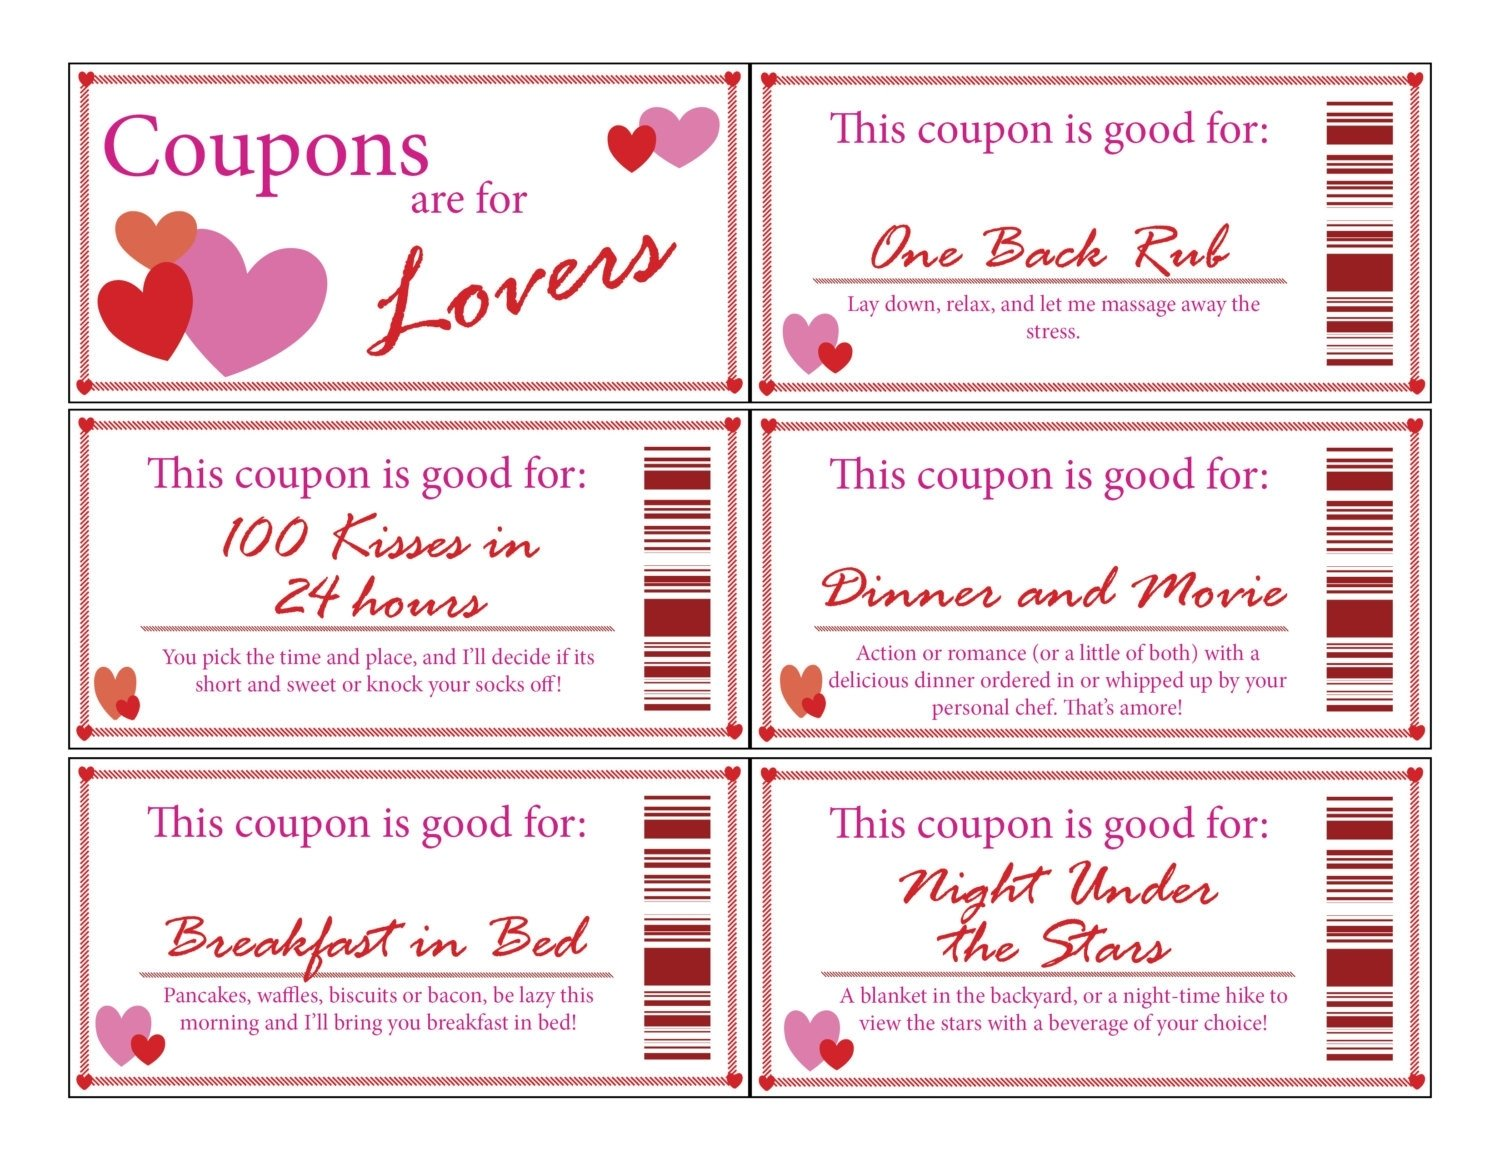 10 Perfect Love Coupon Ideas For Husband coupon book template for husband coles thecolossus co 1 2020